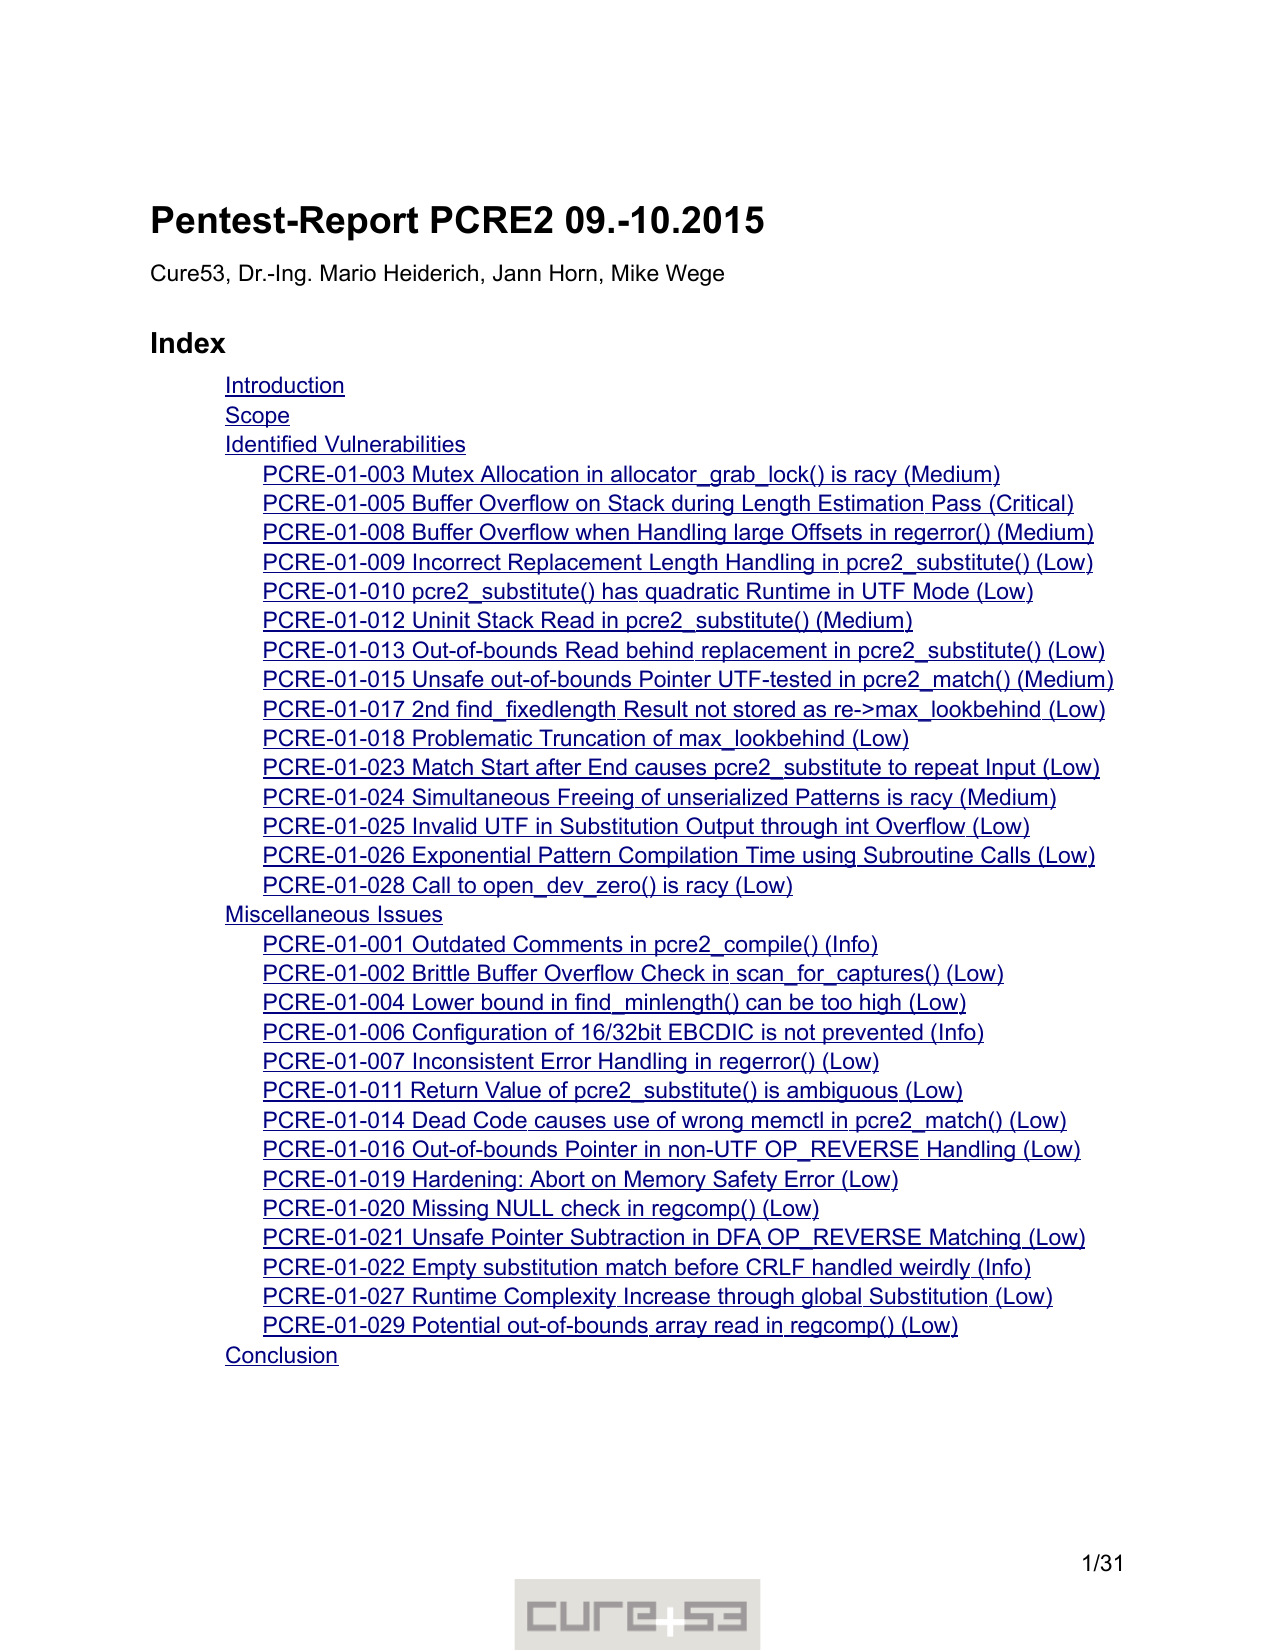 First page of the 'pentest-report pcre' PDF